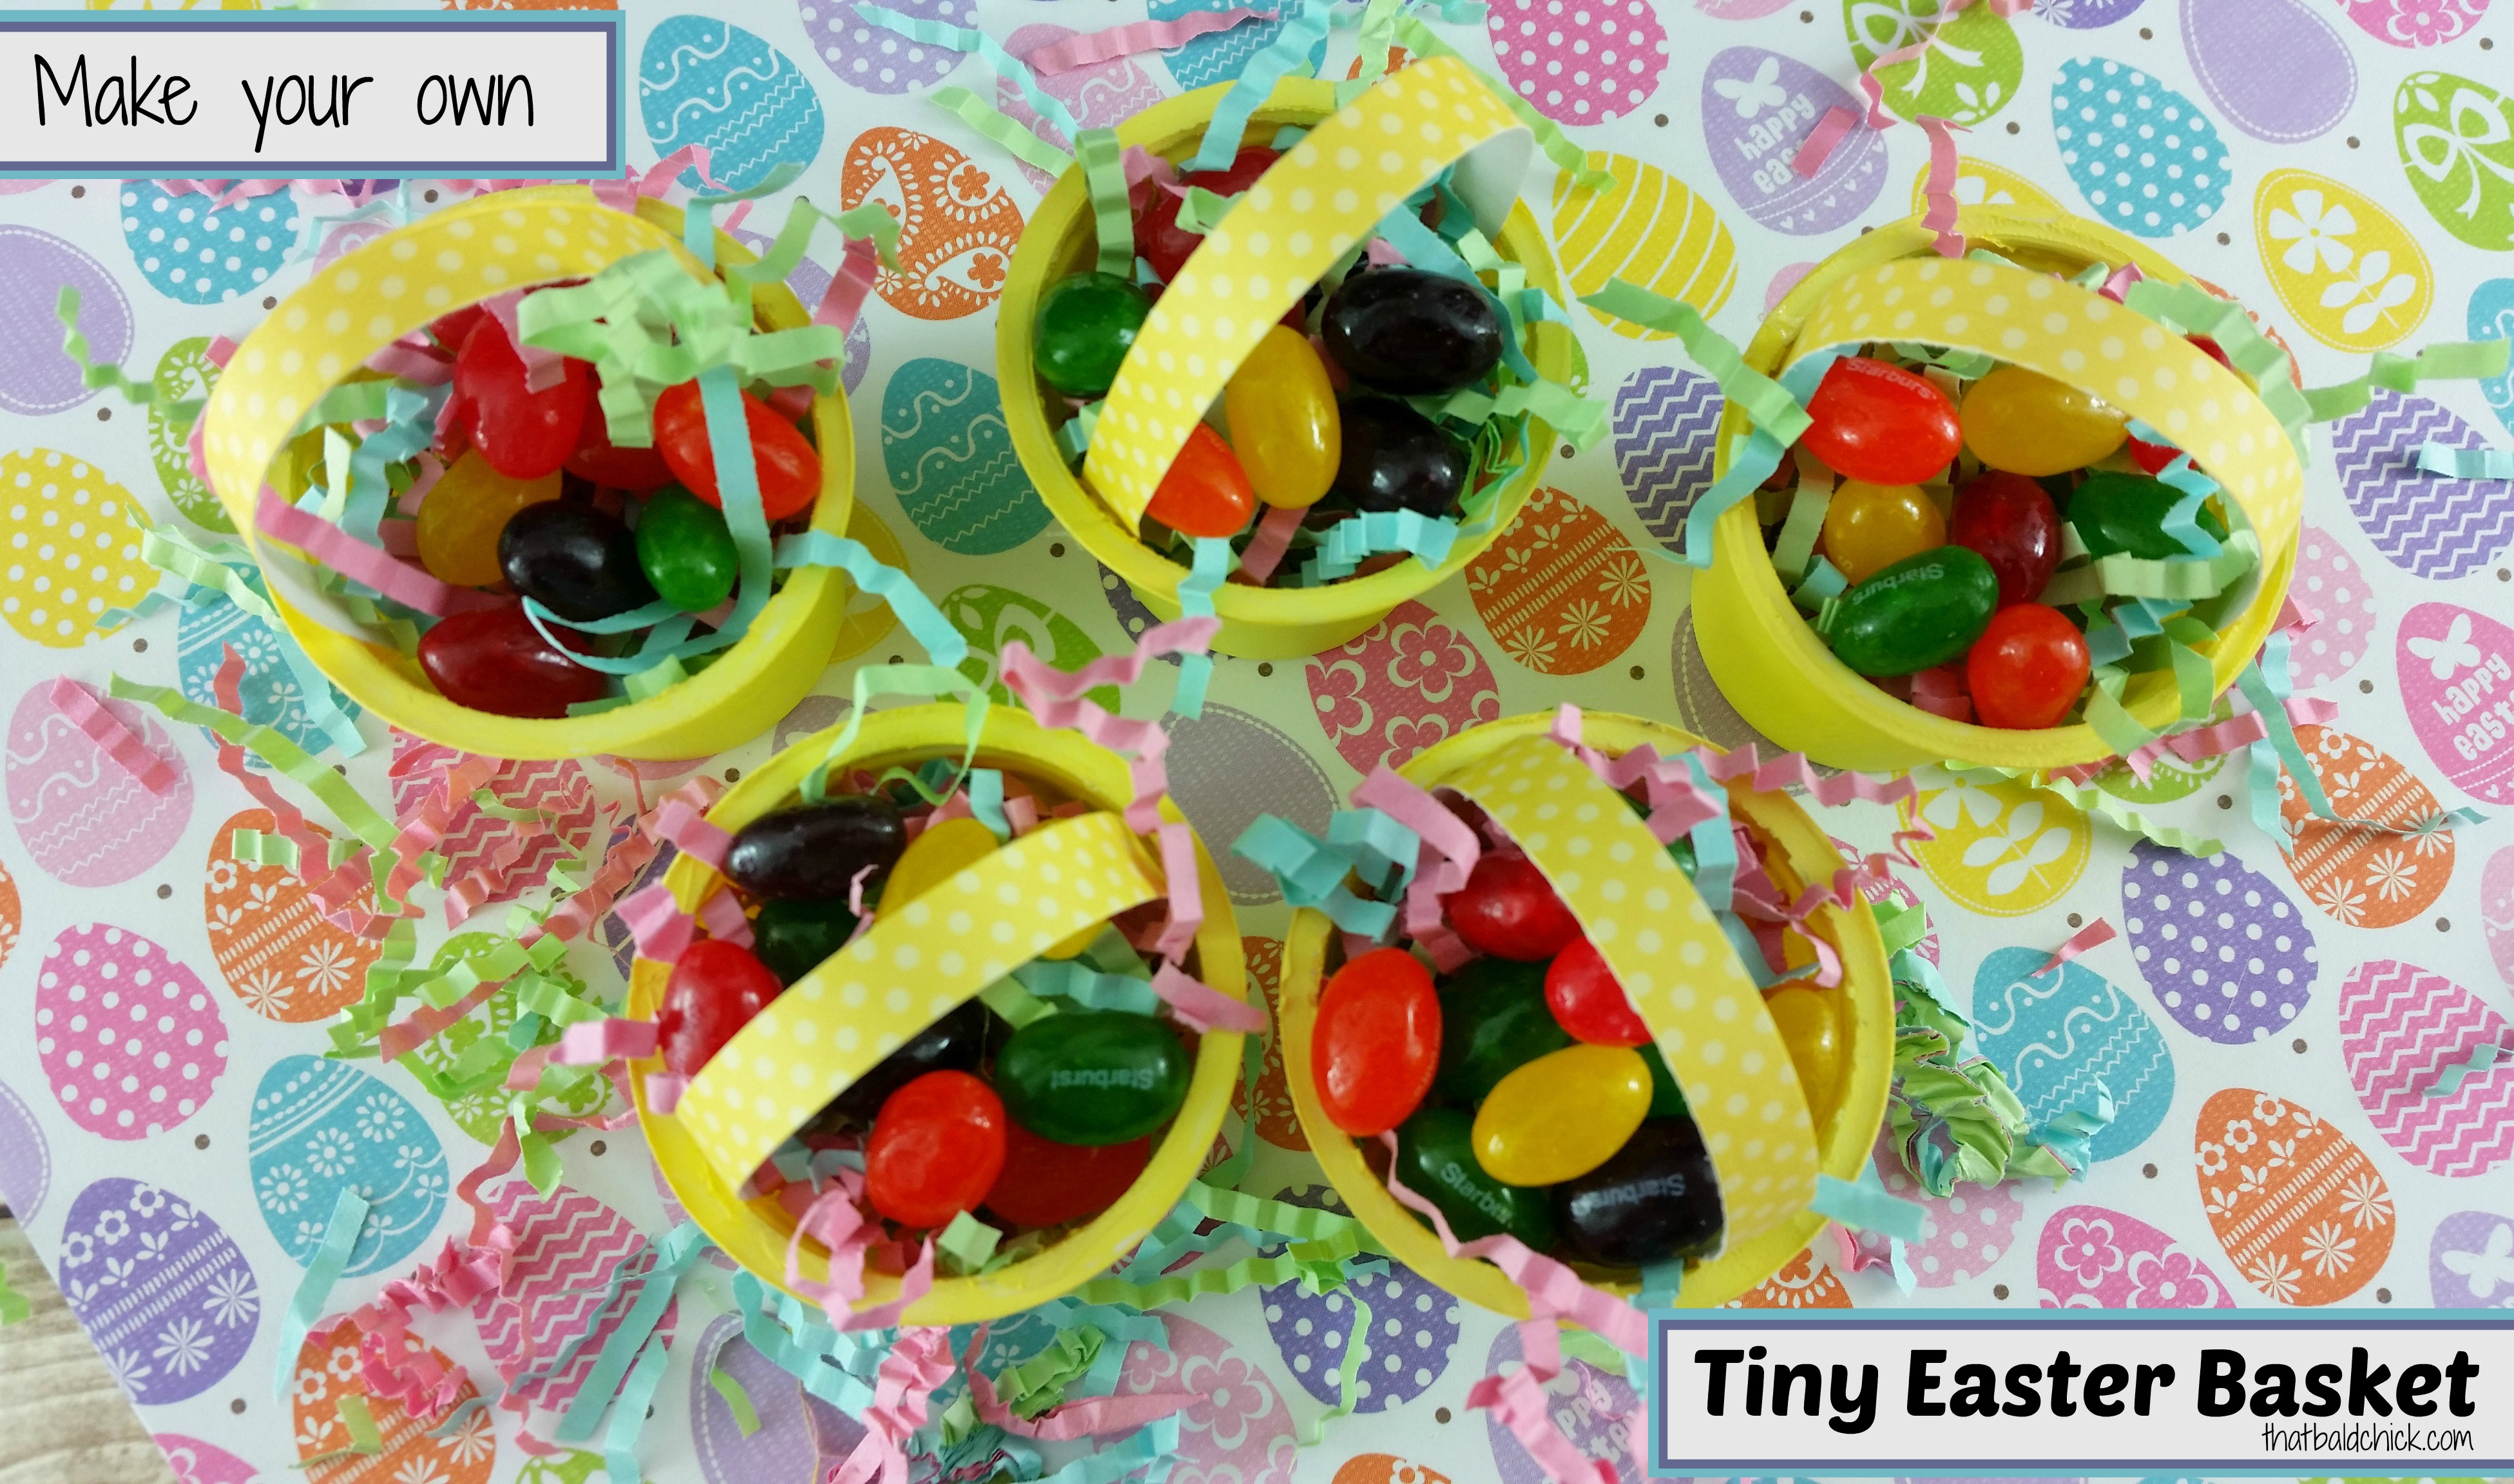 Tiny Easter Basket Craft @thatbaldchick